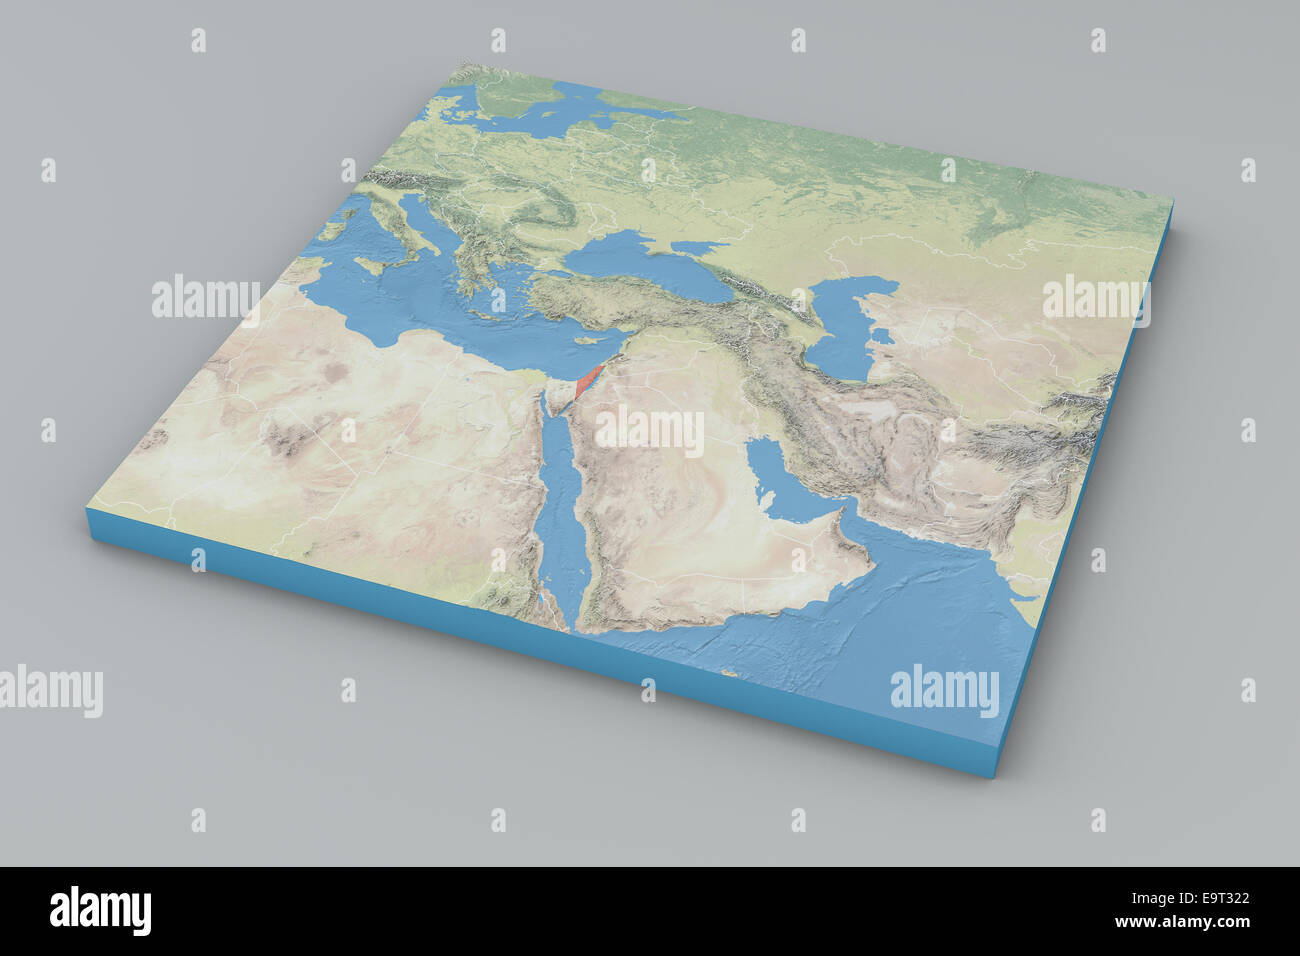 World Map, middle east, Israel. Elements of this image ...